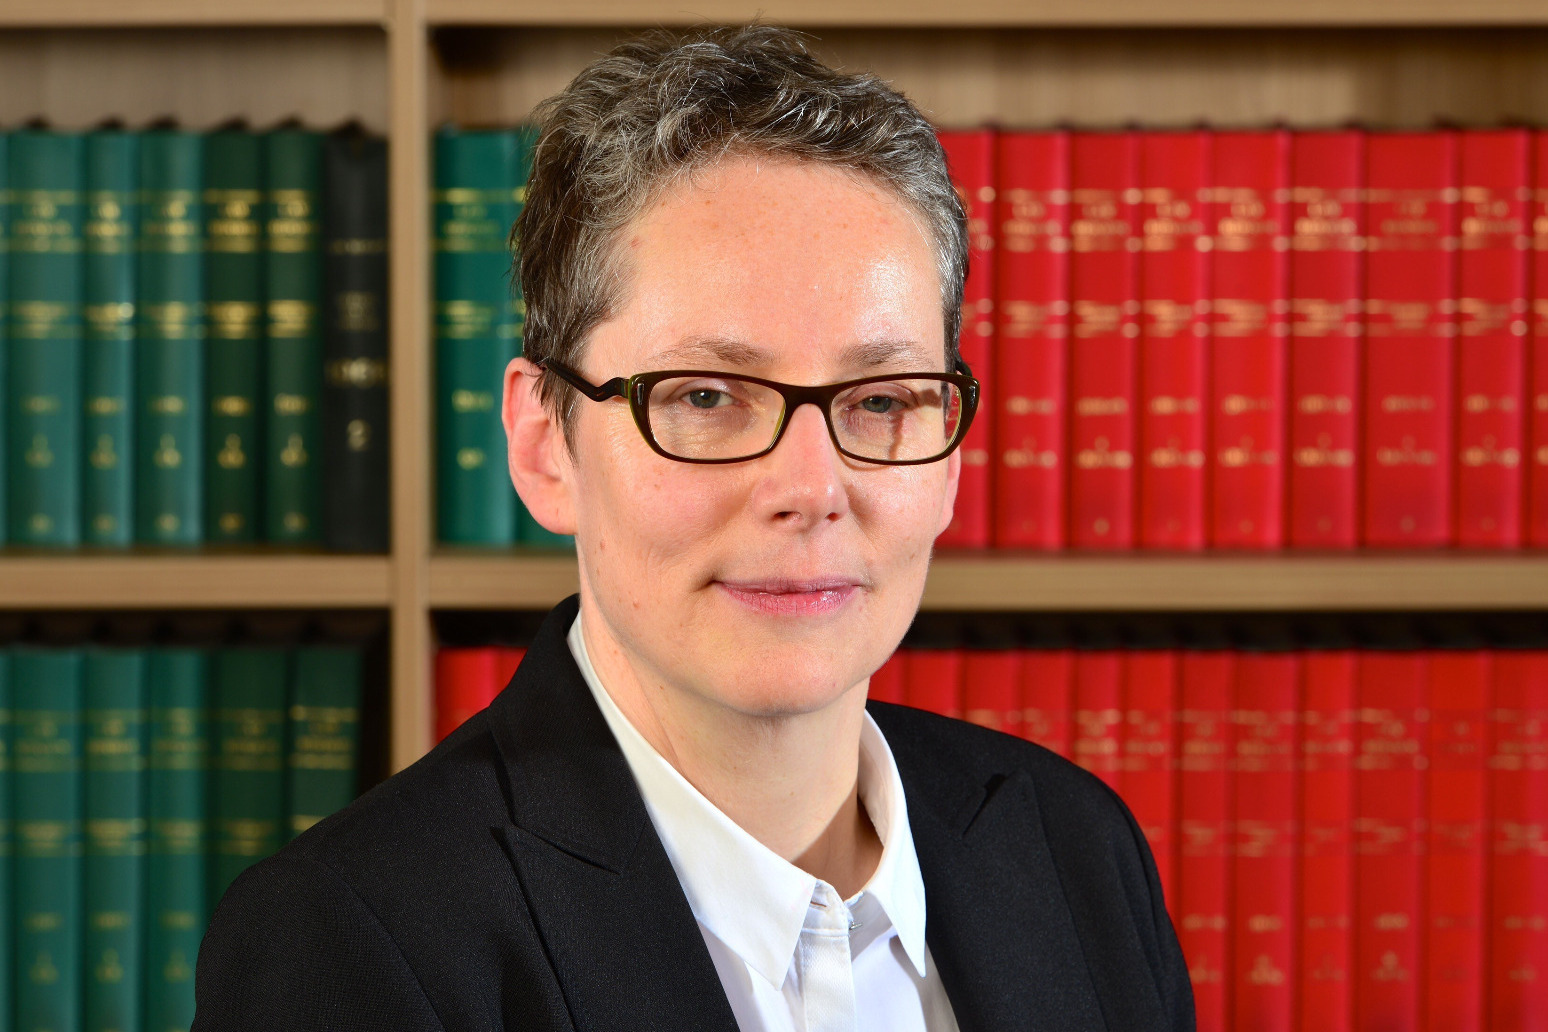 Old Bailey reaches gender parity milestone for judges for first time